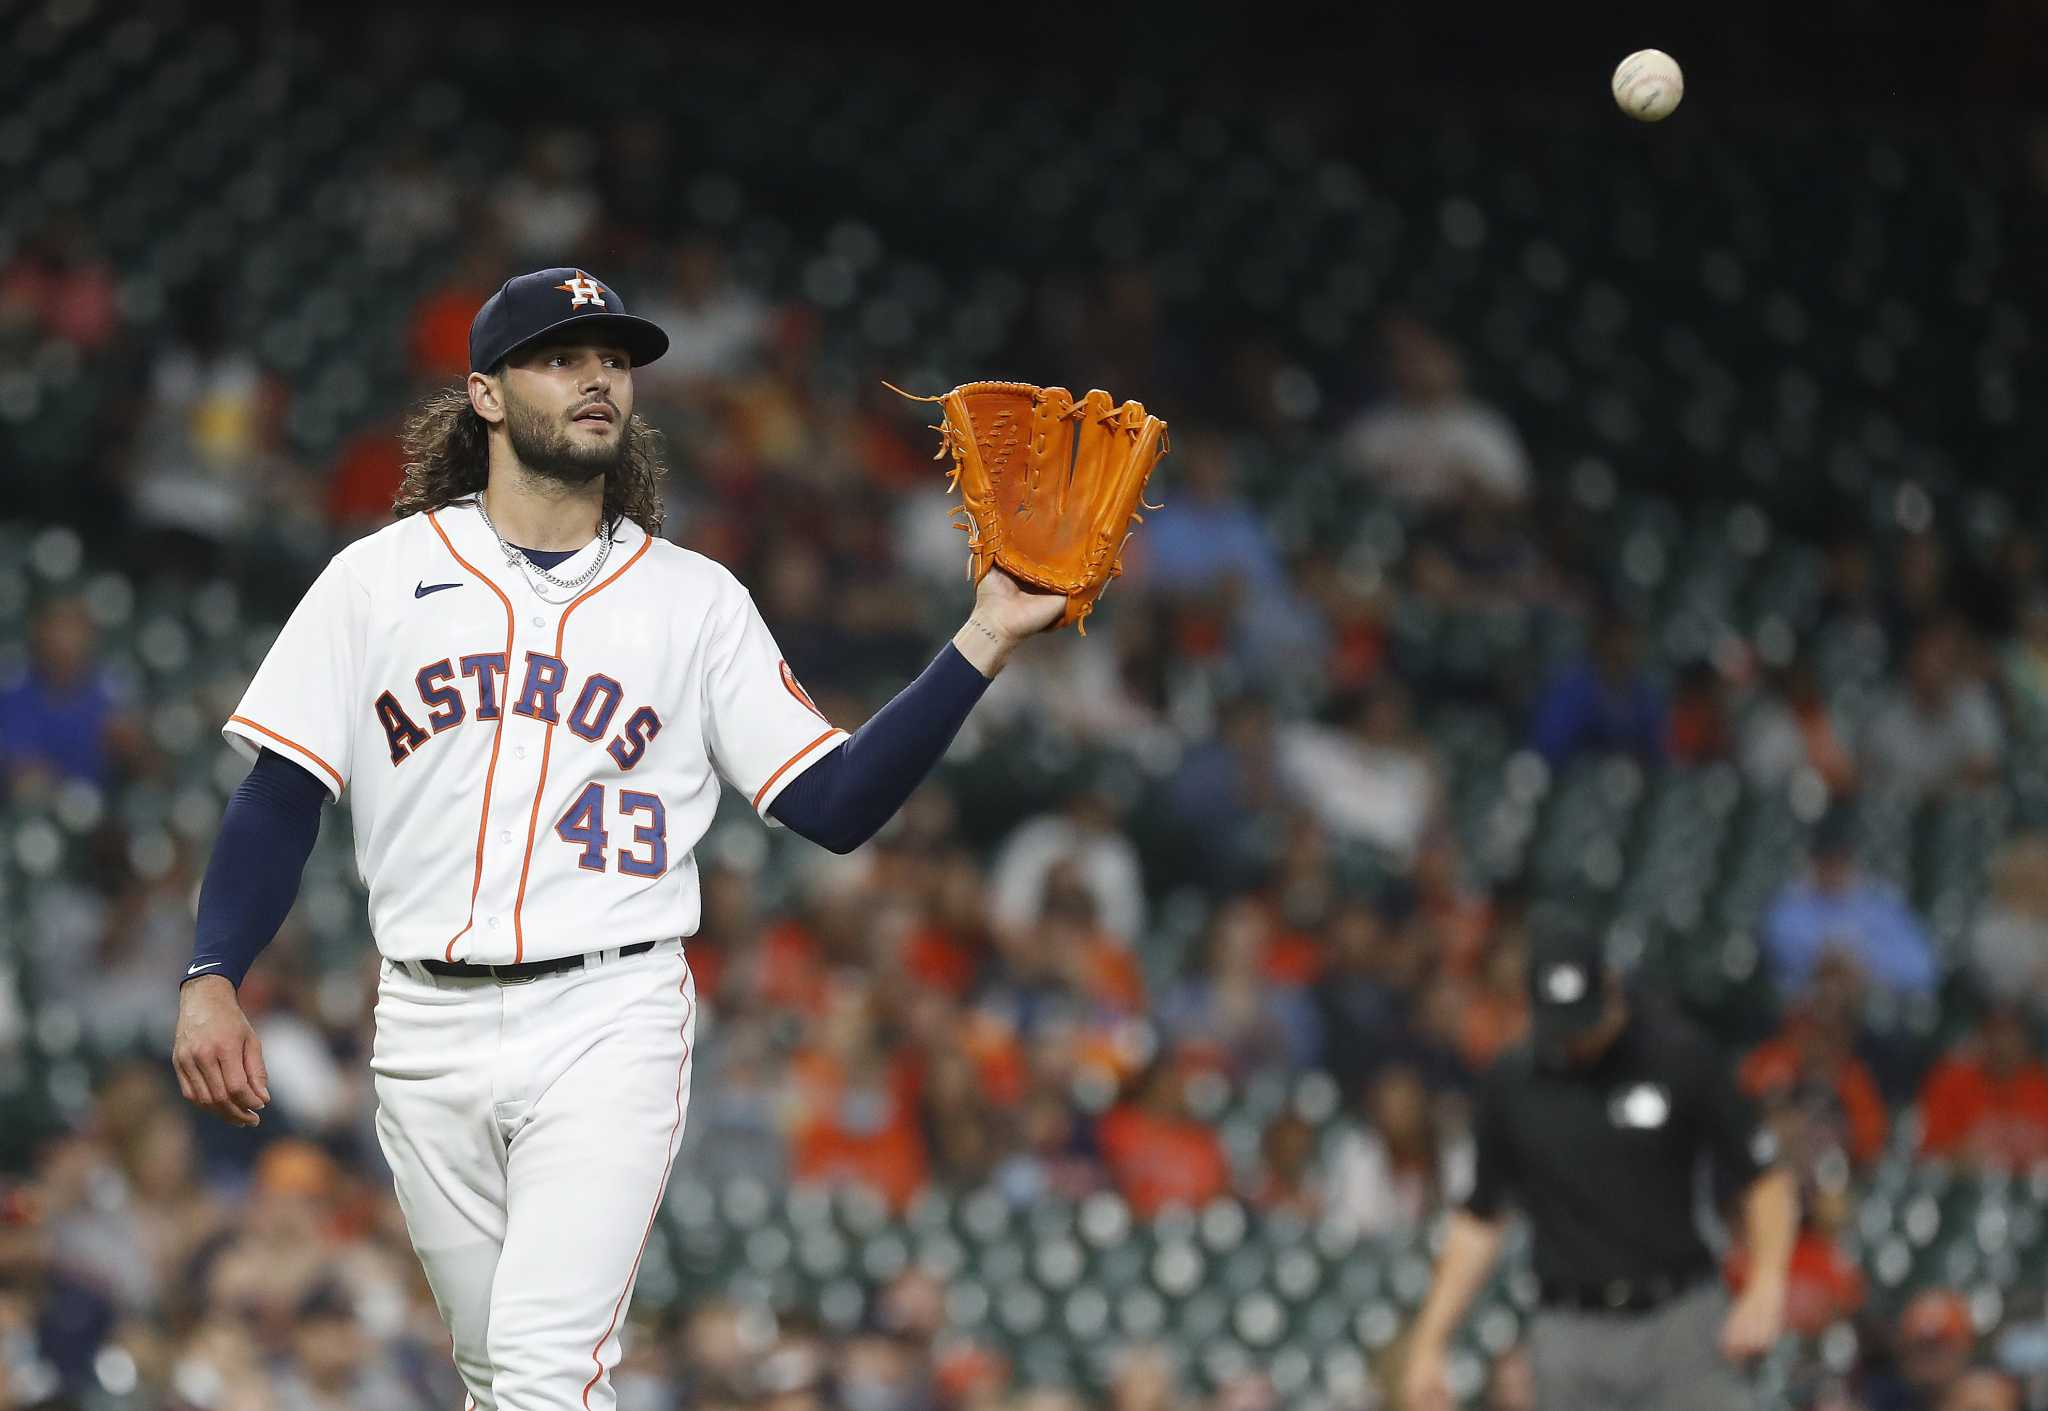 MLB should have postponed Astros game, Lance McCullers says